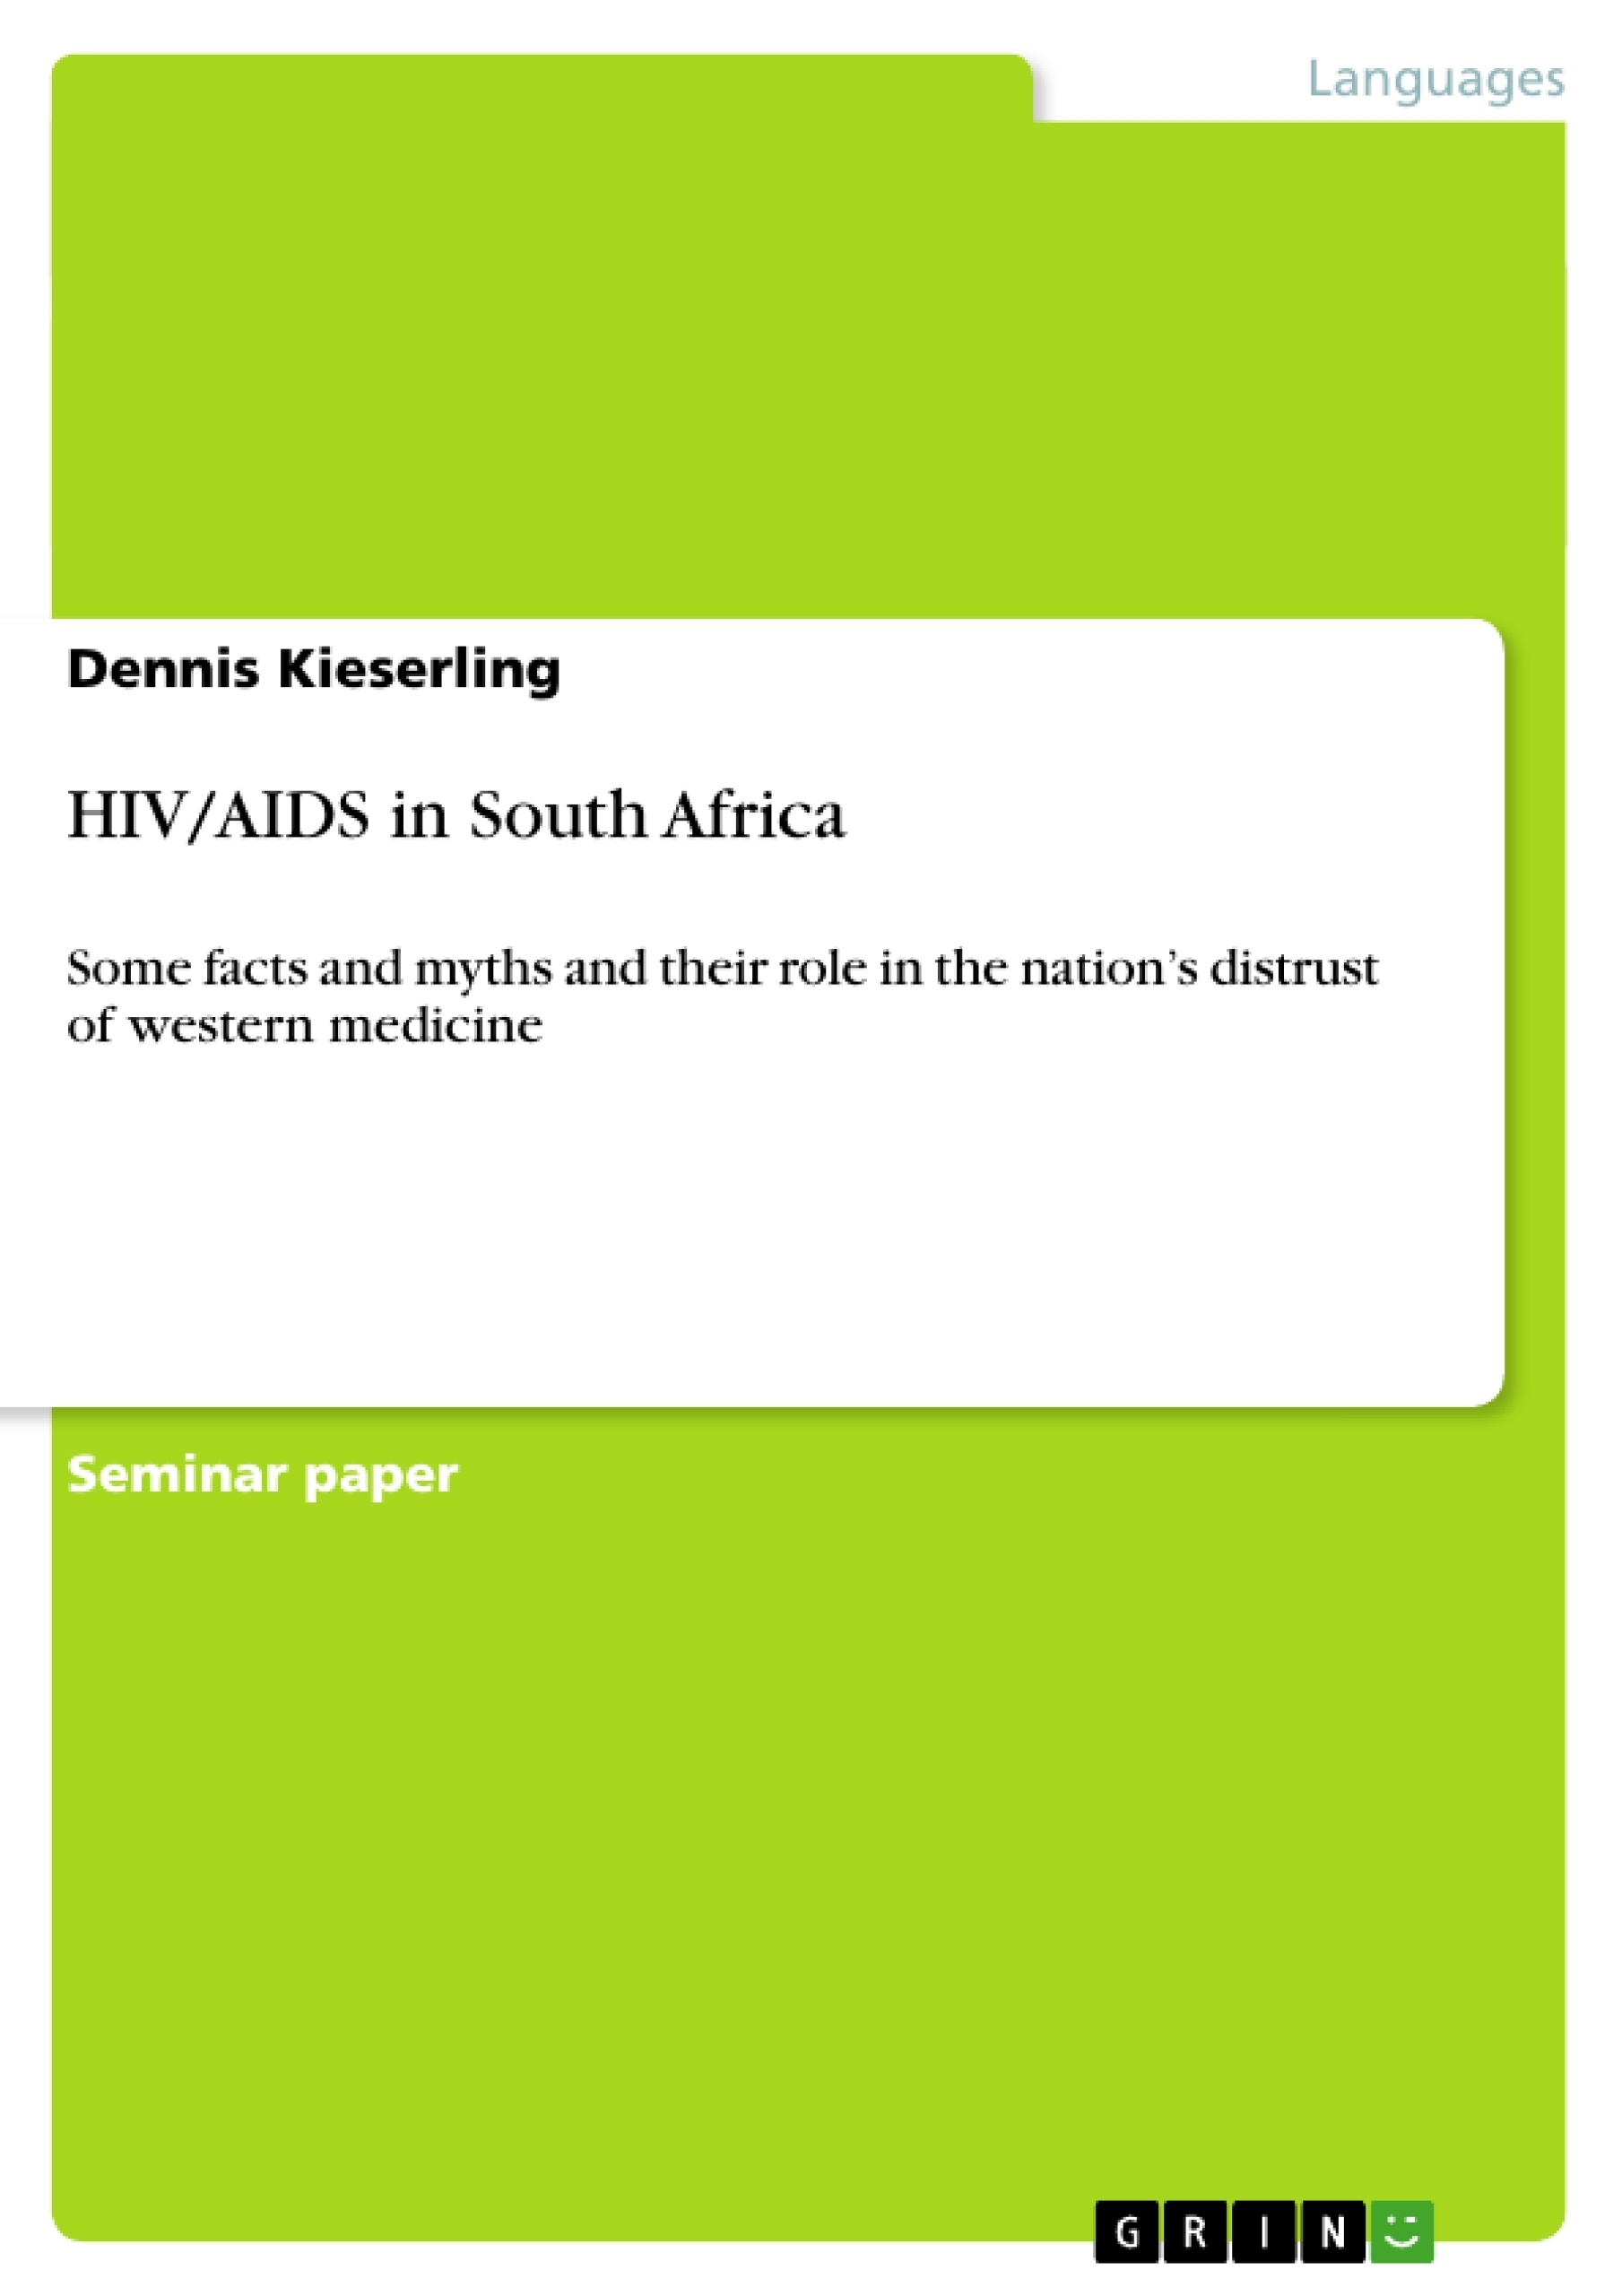 aids in south africa thesis Health policy report from the new england journal of medicine — health care reform and the crisis of hiv and aids in south africa.